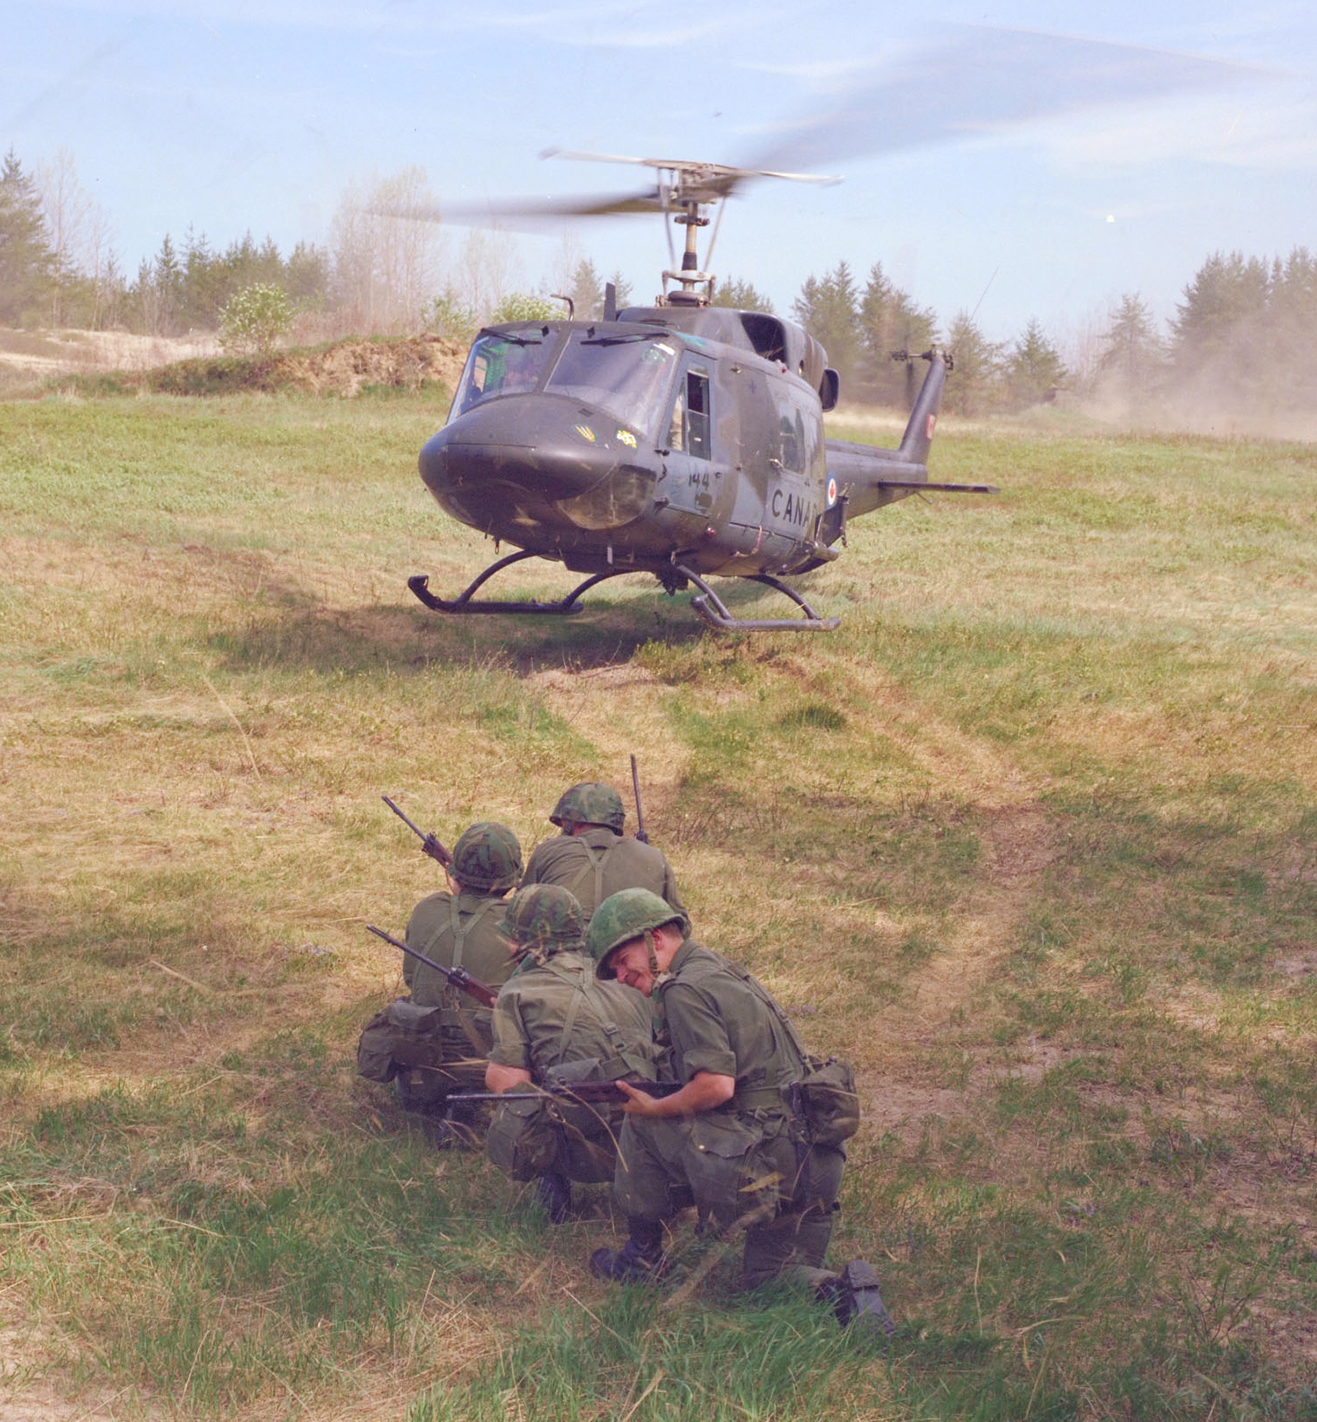 Four soldiers wait for an airlift by a CH-135 Twin Huey helicopter during a training event supported by 427 Squadron around 1982. An important part of 427 Squadron's celebrated history of aviation excellence, the CH-135 Twin Huey helicopter served Army bases across Canada and was frequently used on United Nations missions around the world. 427 Squadron retired the CH-135 Twin Huey in 1997, after receiving the last of the newly-purchased Bell CH-146 Griffon fleet.  PHOTO: DND Archives, ISC82-977